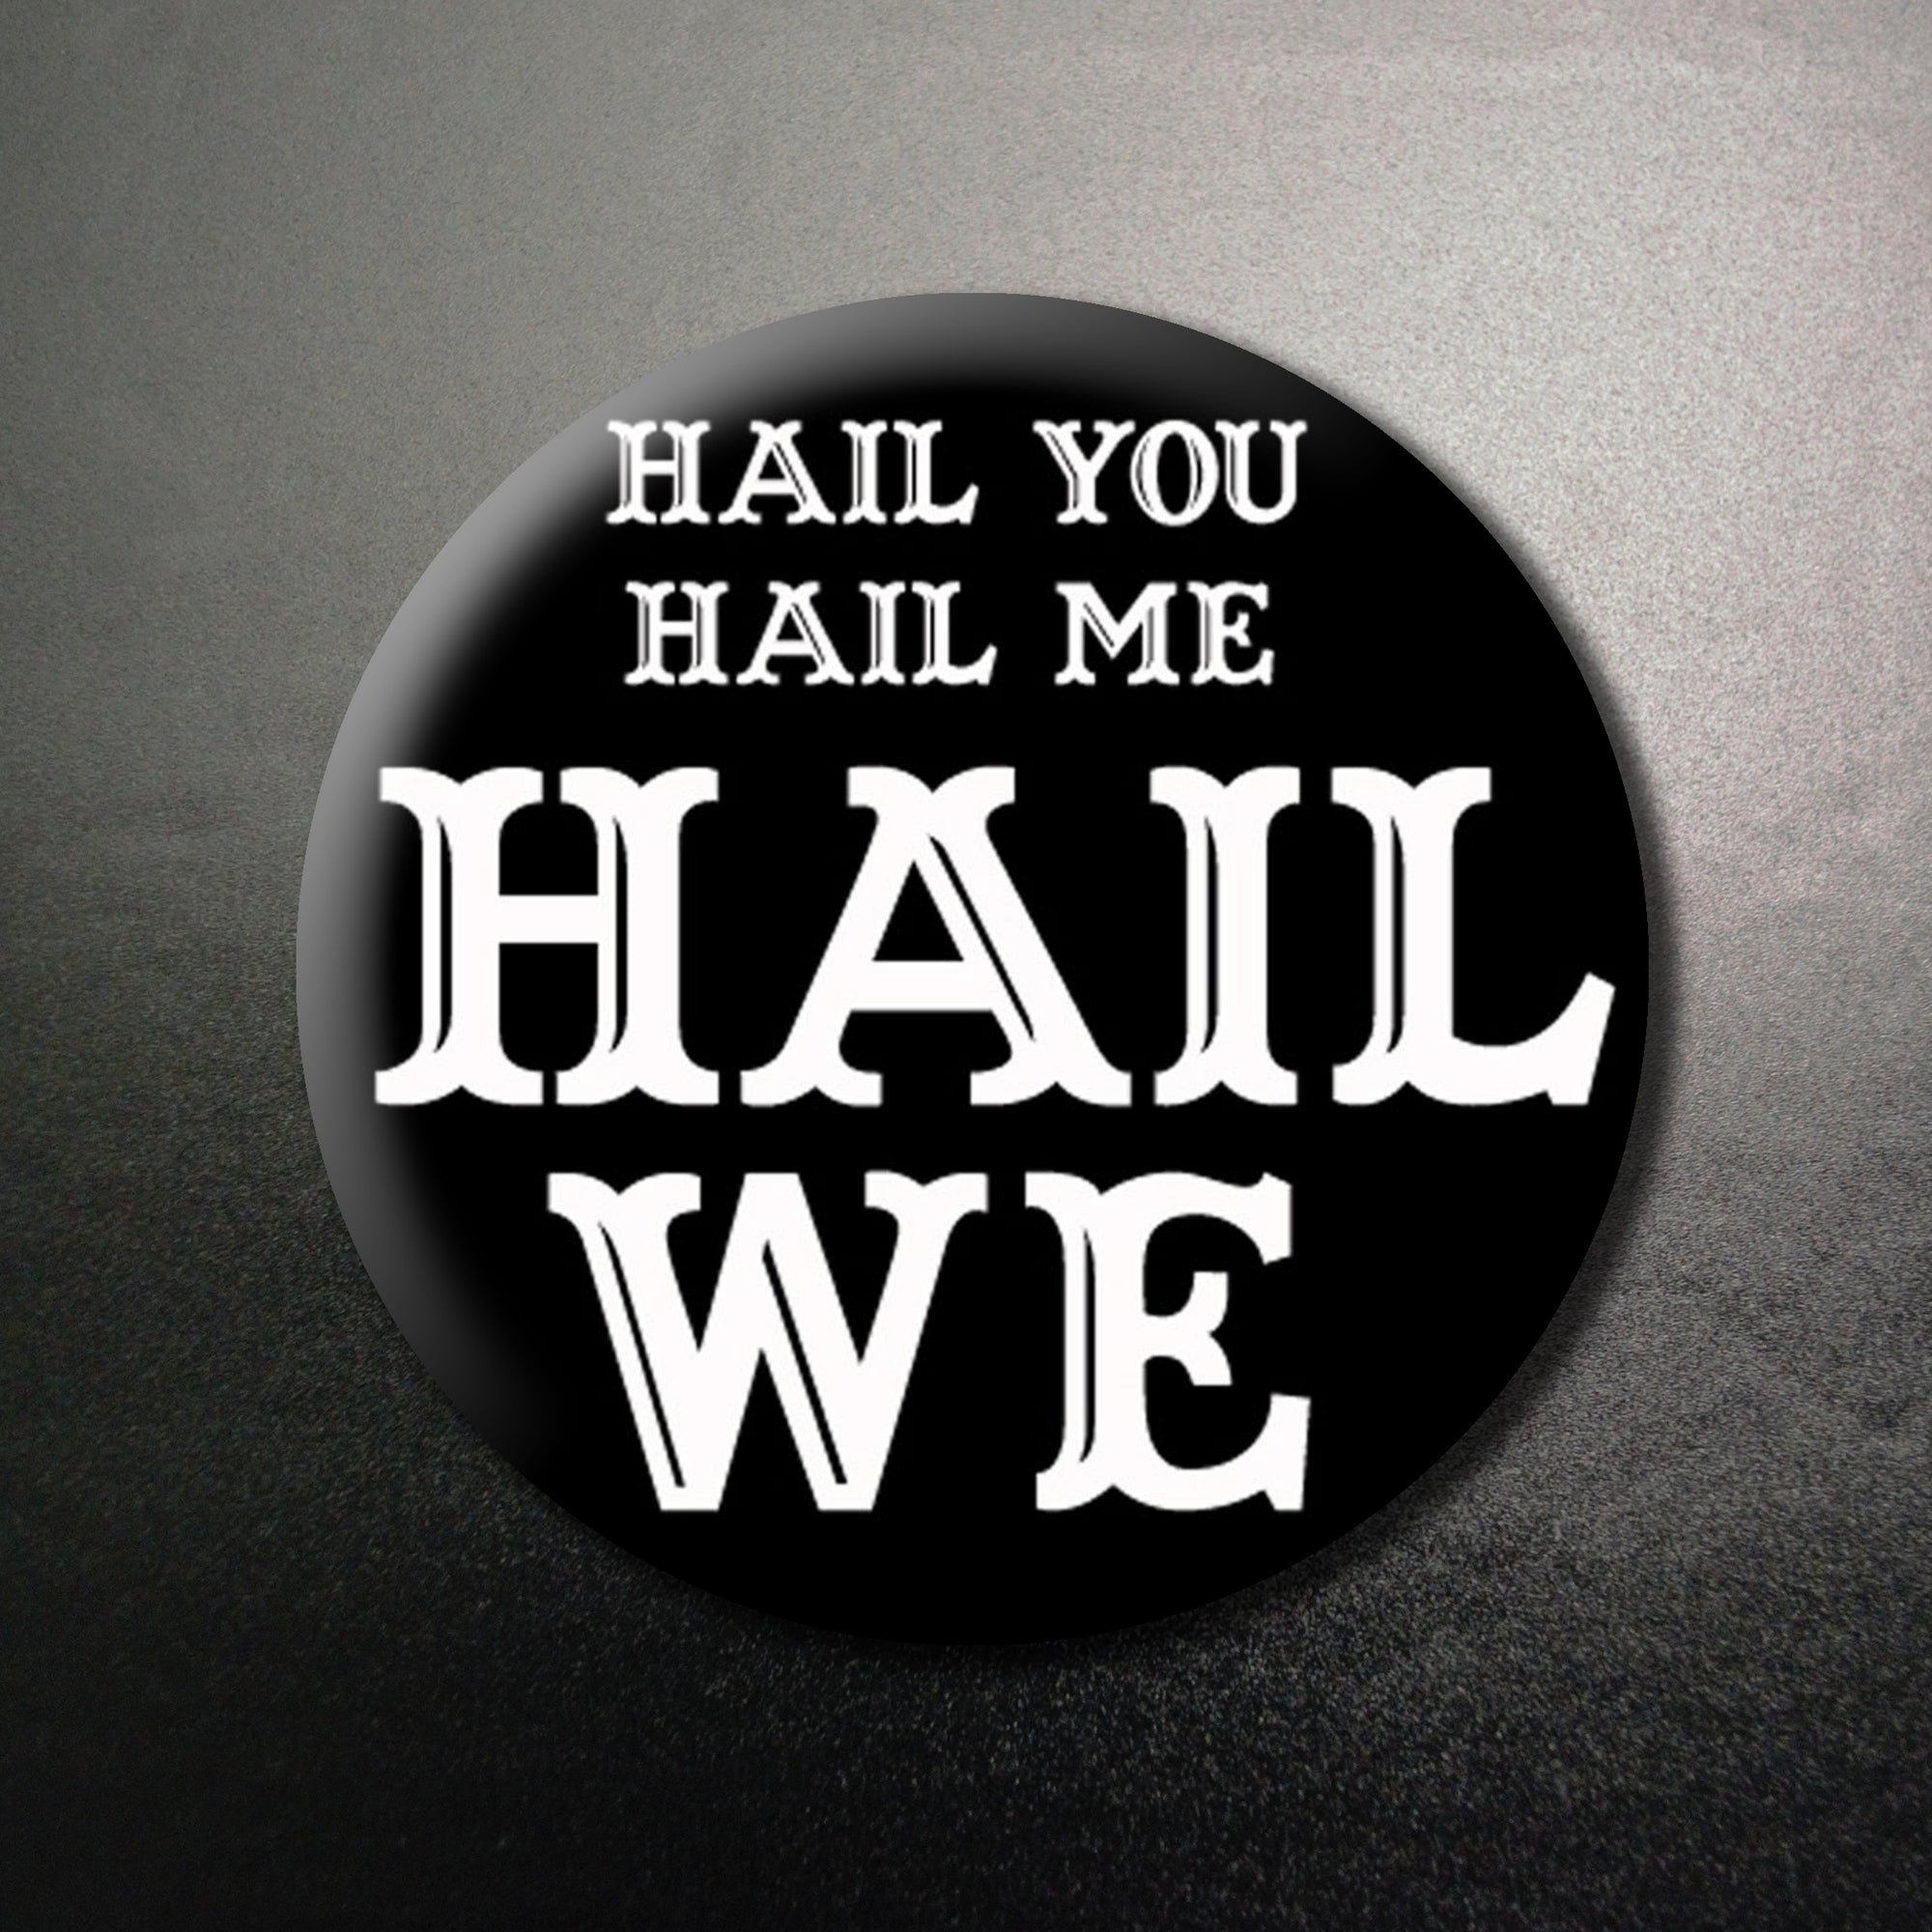 Hail We 1.25 inch Pinback Button or Magnet